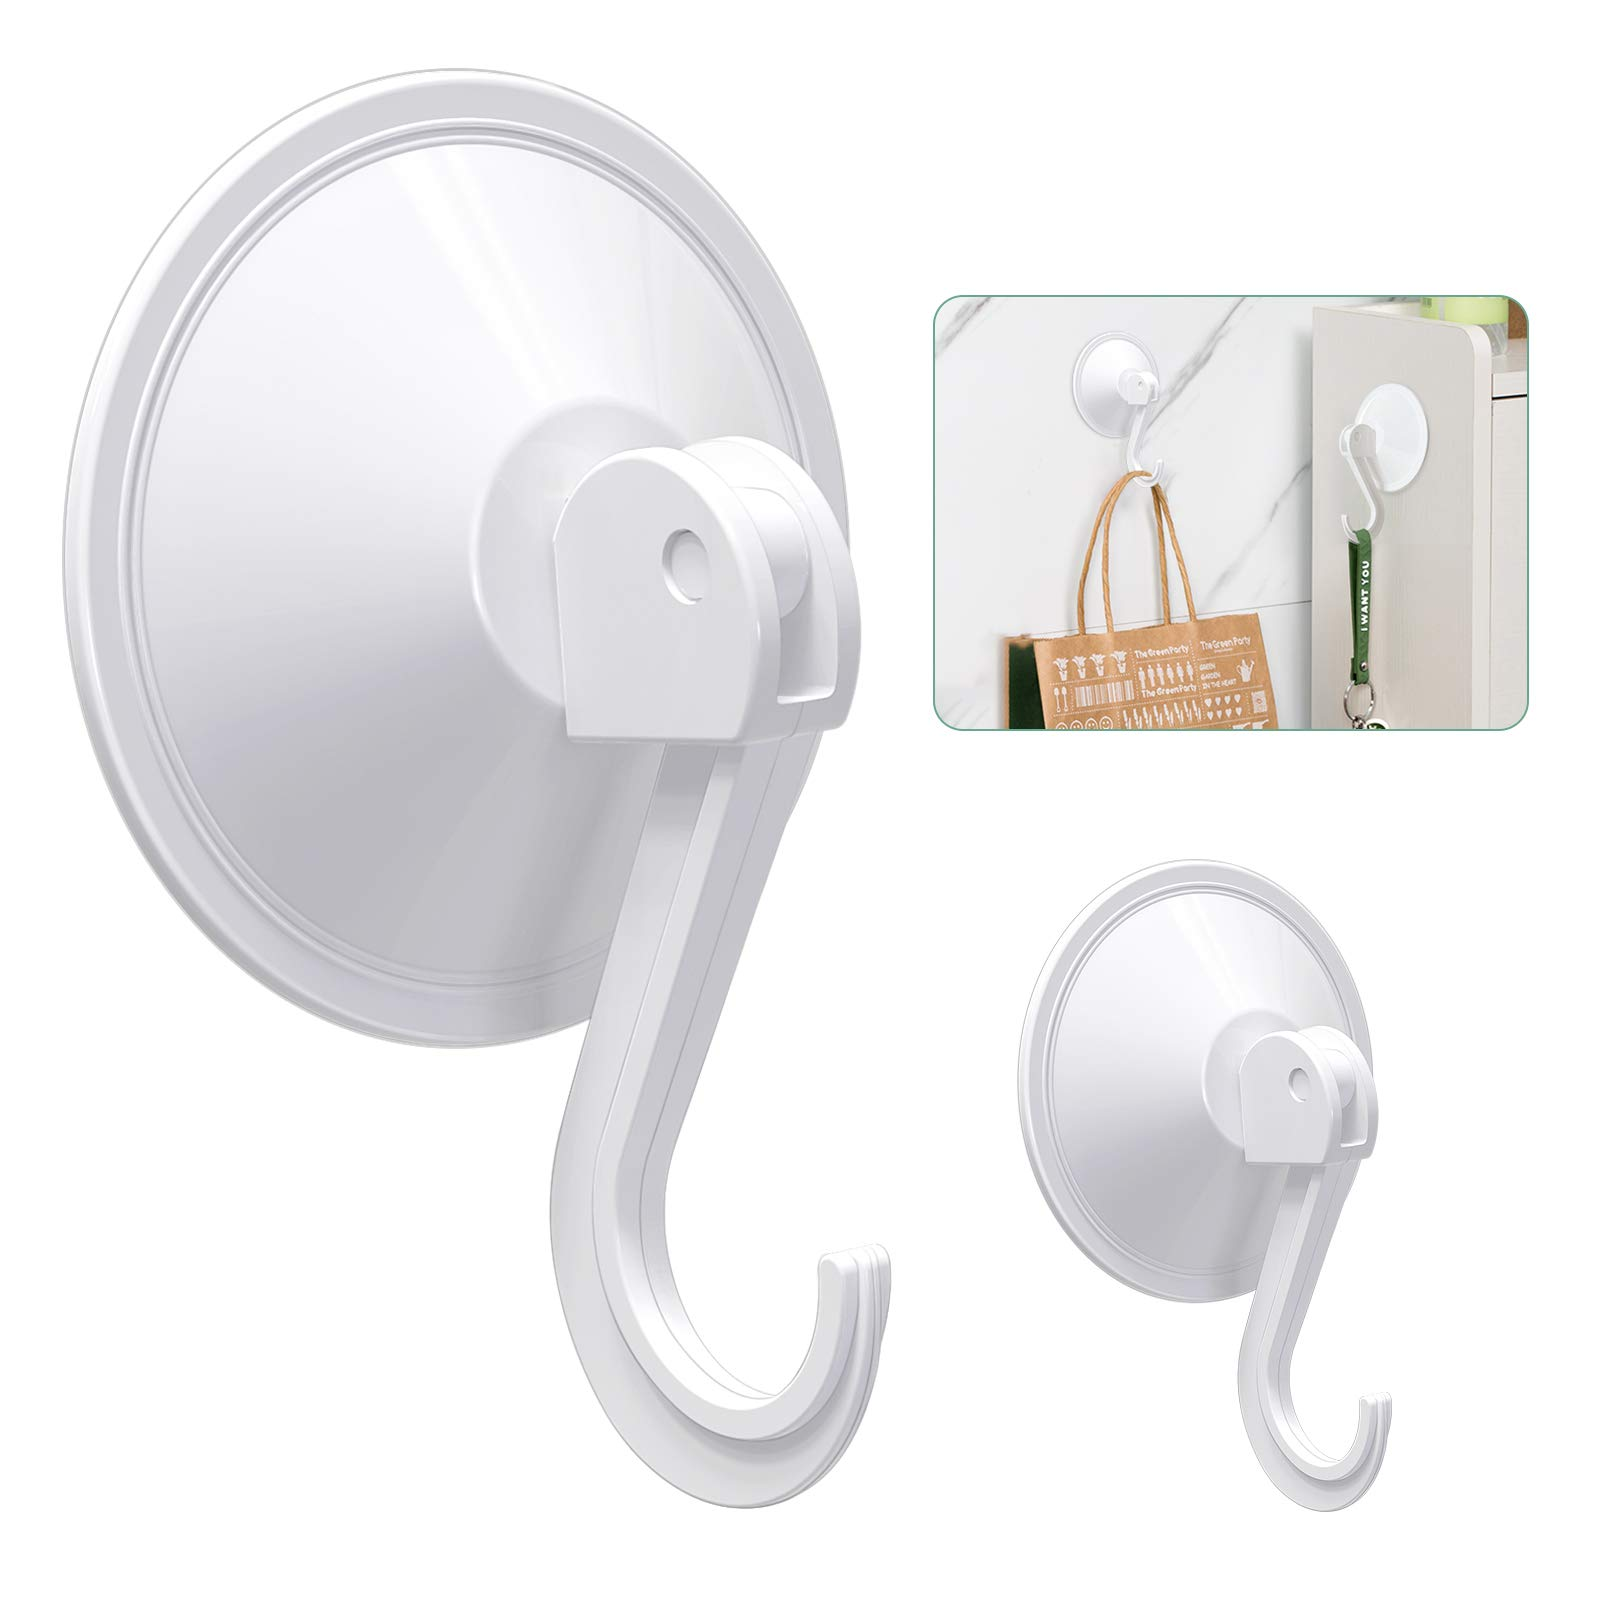 HangerSpace Suction Cup Hooks, White Plastic Vacuum Suction Cup Hooks Reusable Heavy Duty Suction Hanger for Kitchen Shower Window Glass Wall - 2 Pack